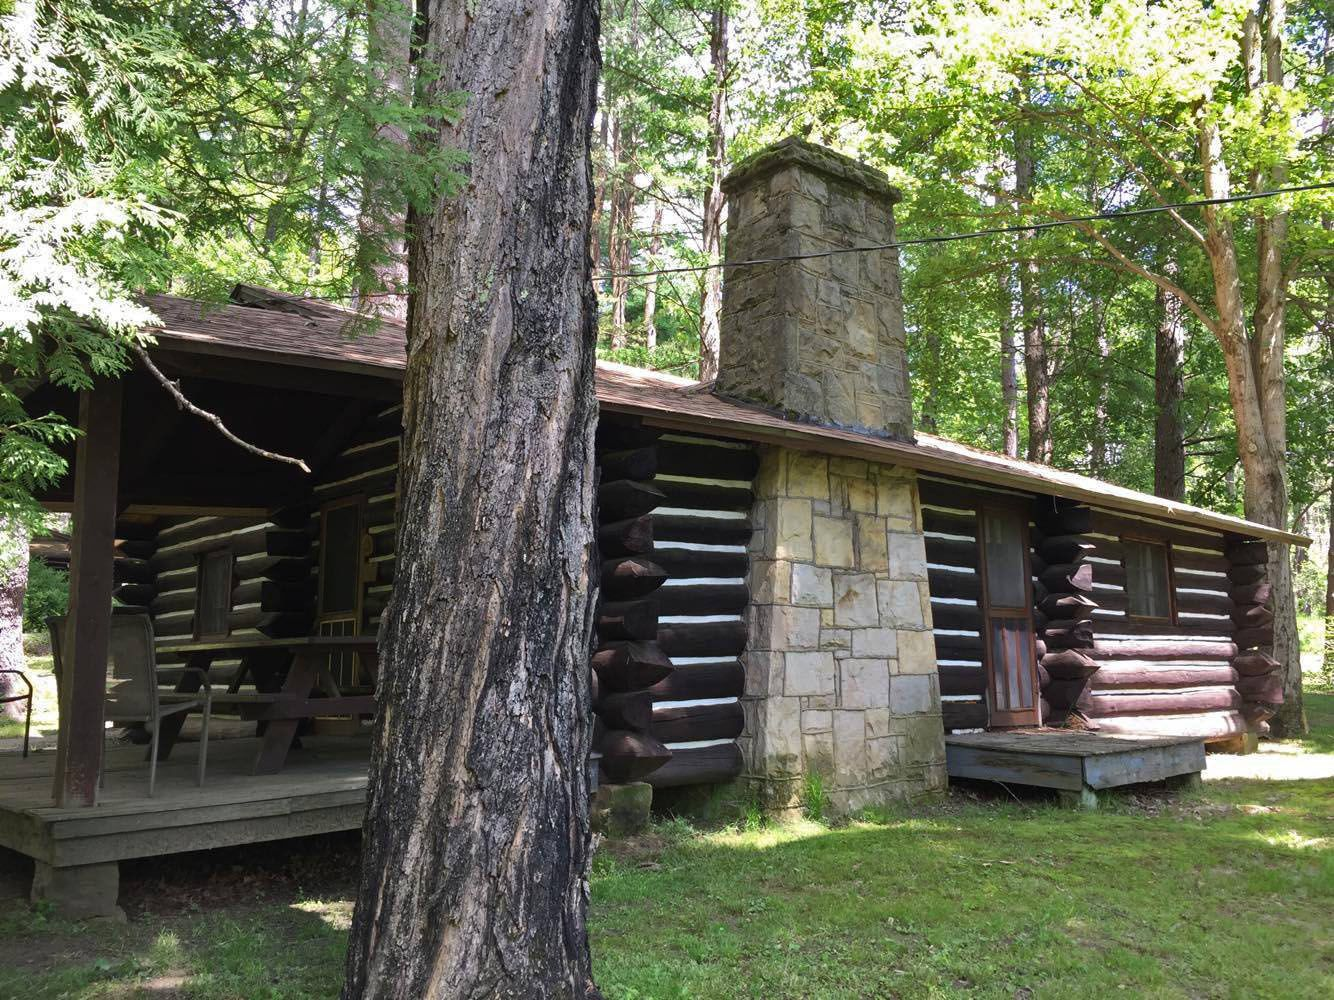 Need A Cabin Getaway Winter Rates Still Apply For Our Cook Riverside Fair Winds And Whispering Oaks Cabin In Cook Forest In 2020 Getaway Cabins Cabin Cabin Rentals